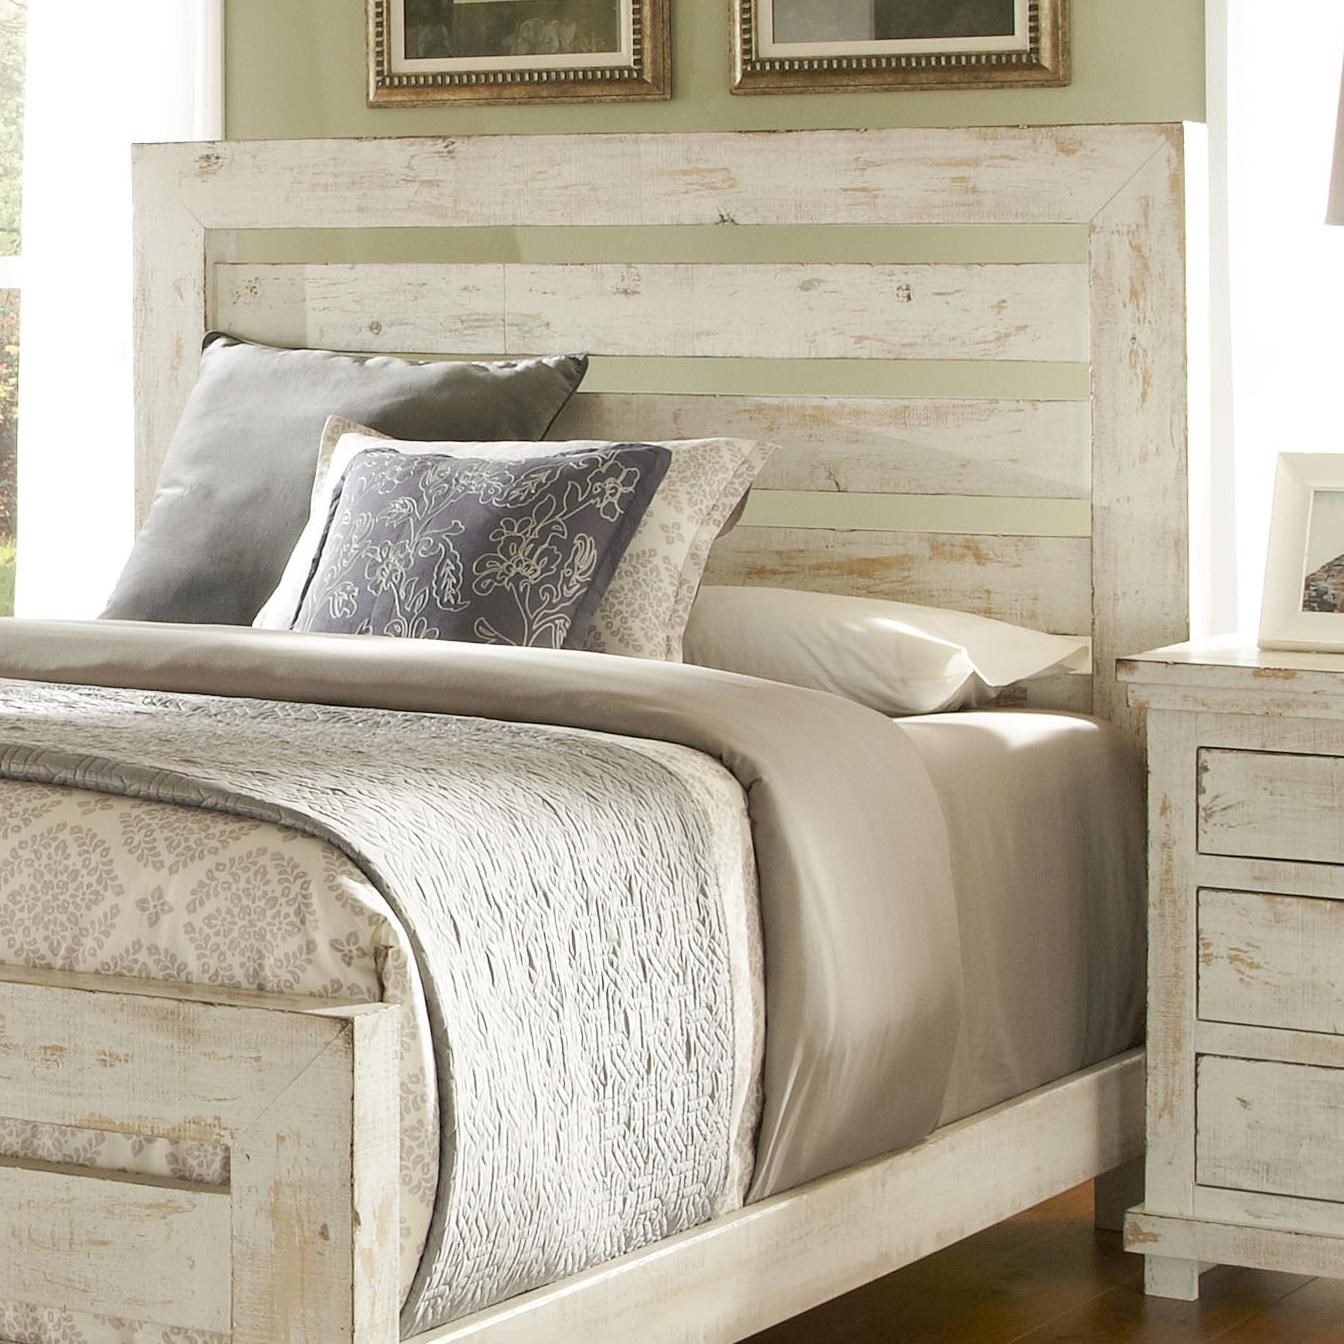 Progressive Furniture Willow Queen Slat Headboard With Distressed Pine Frame